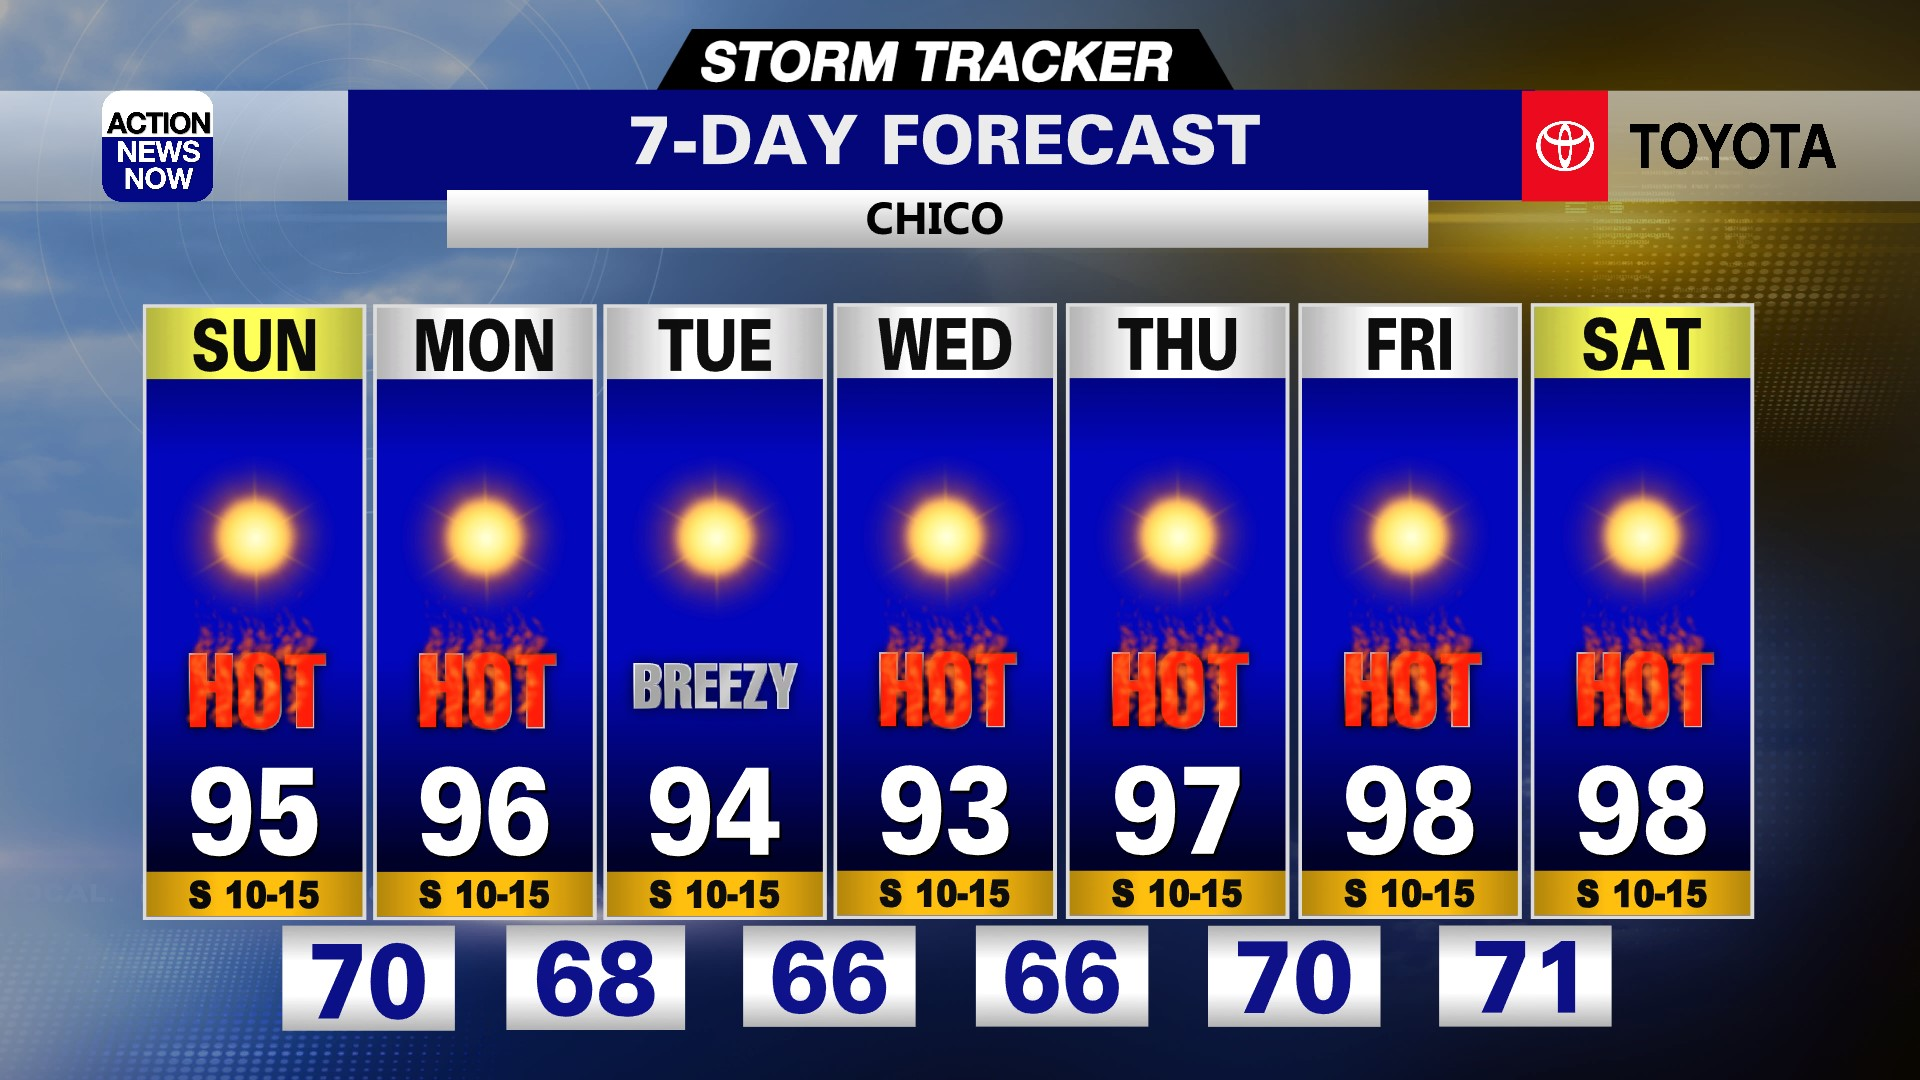 Chico 7-day